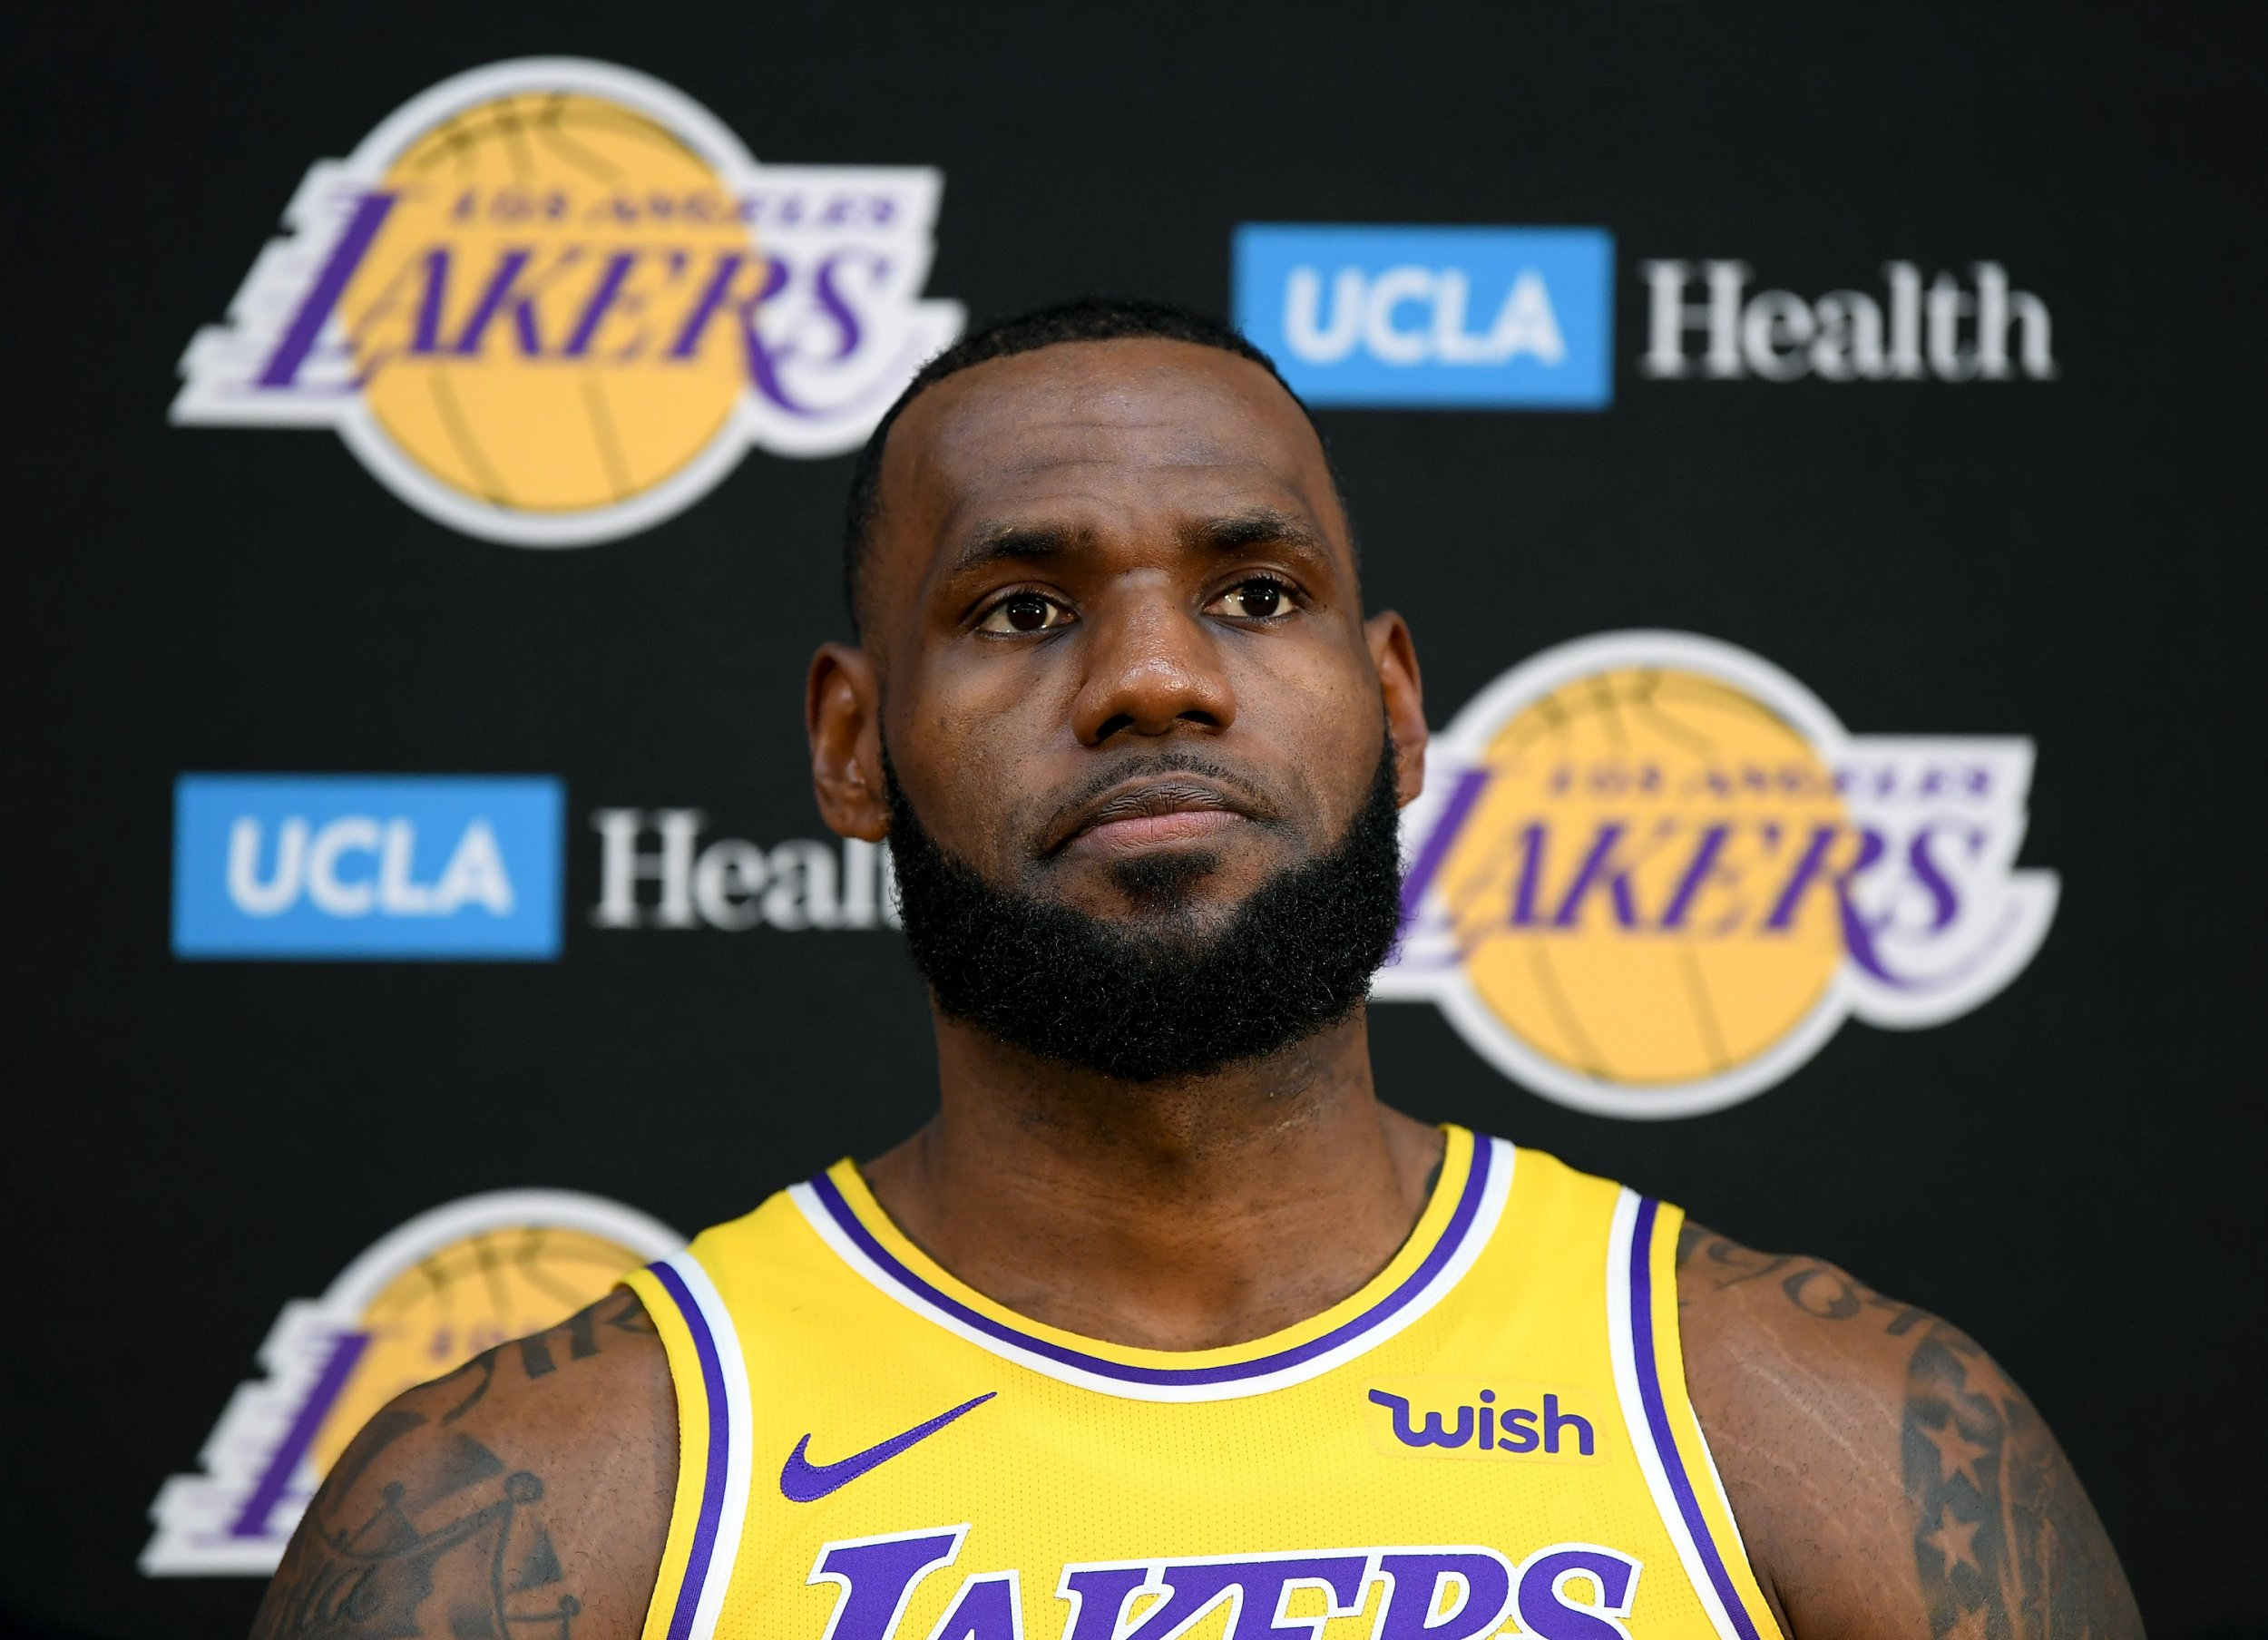 Here's what LeBron said about the Lakers' prospects for this season